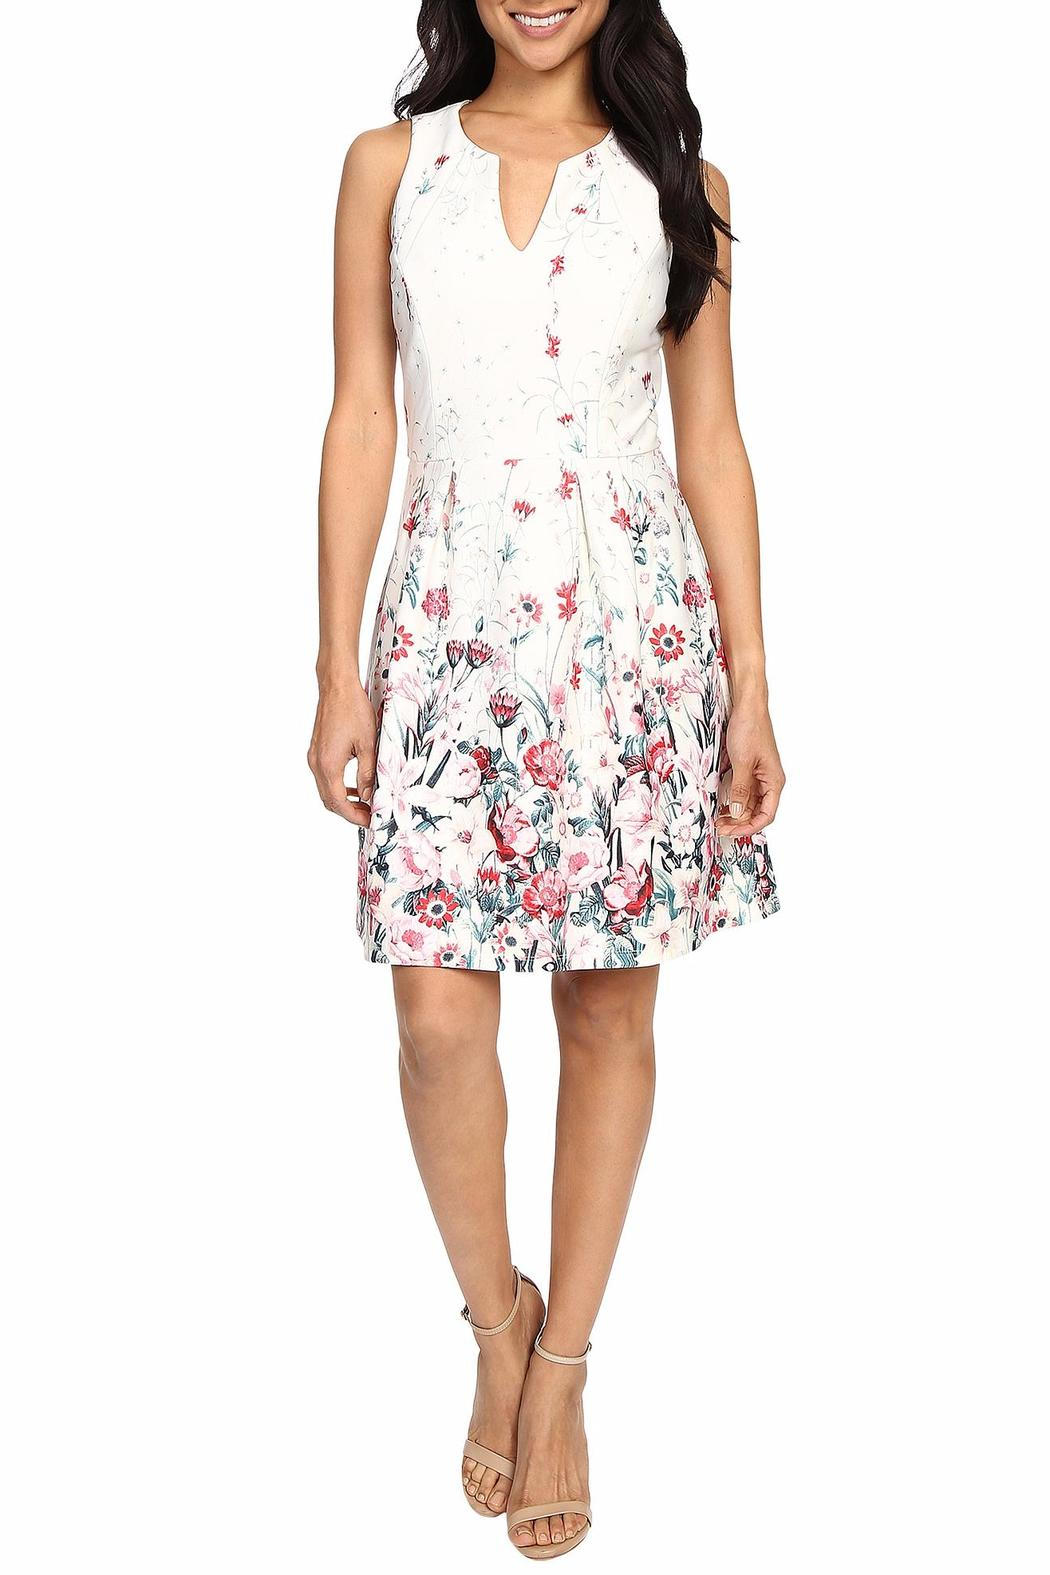 Kut from the Kloth Lana Floral Dress - Main Image